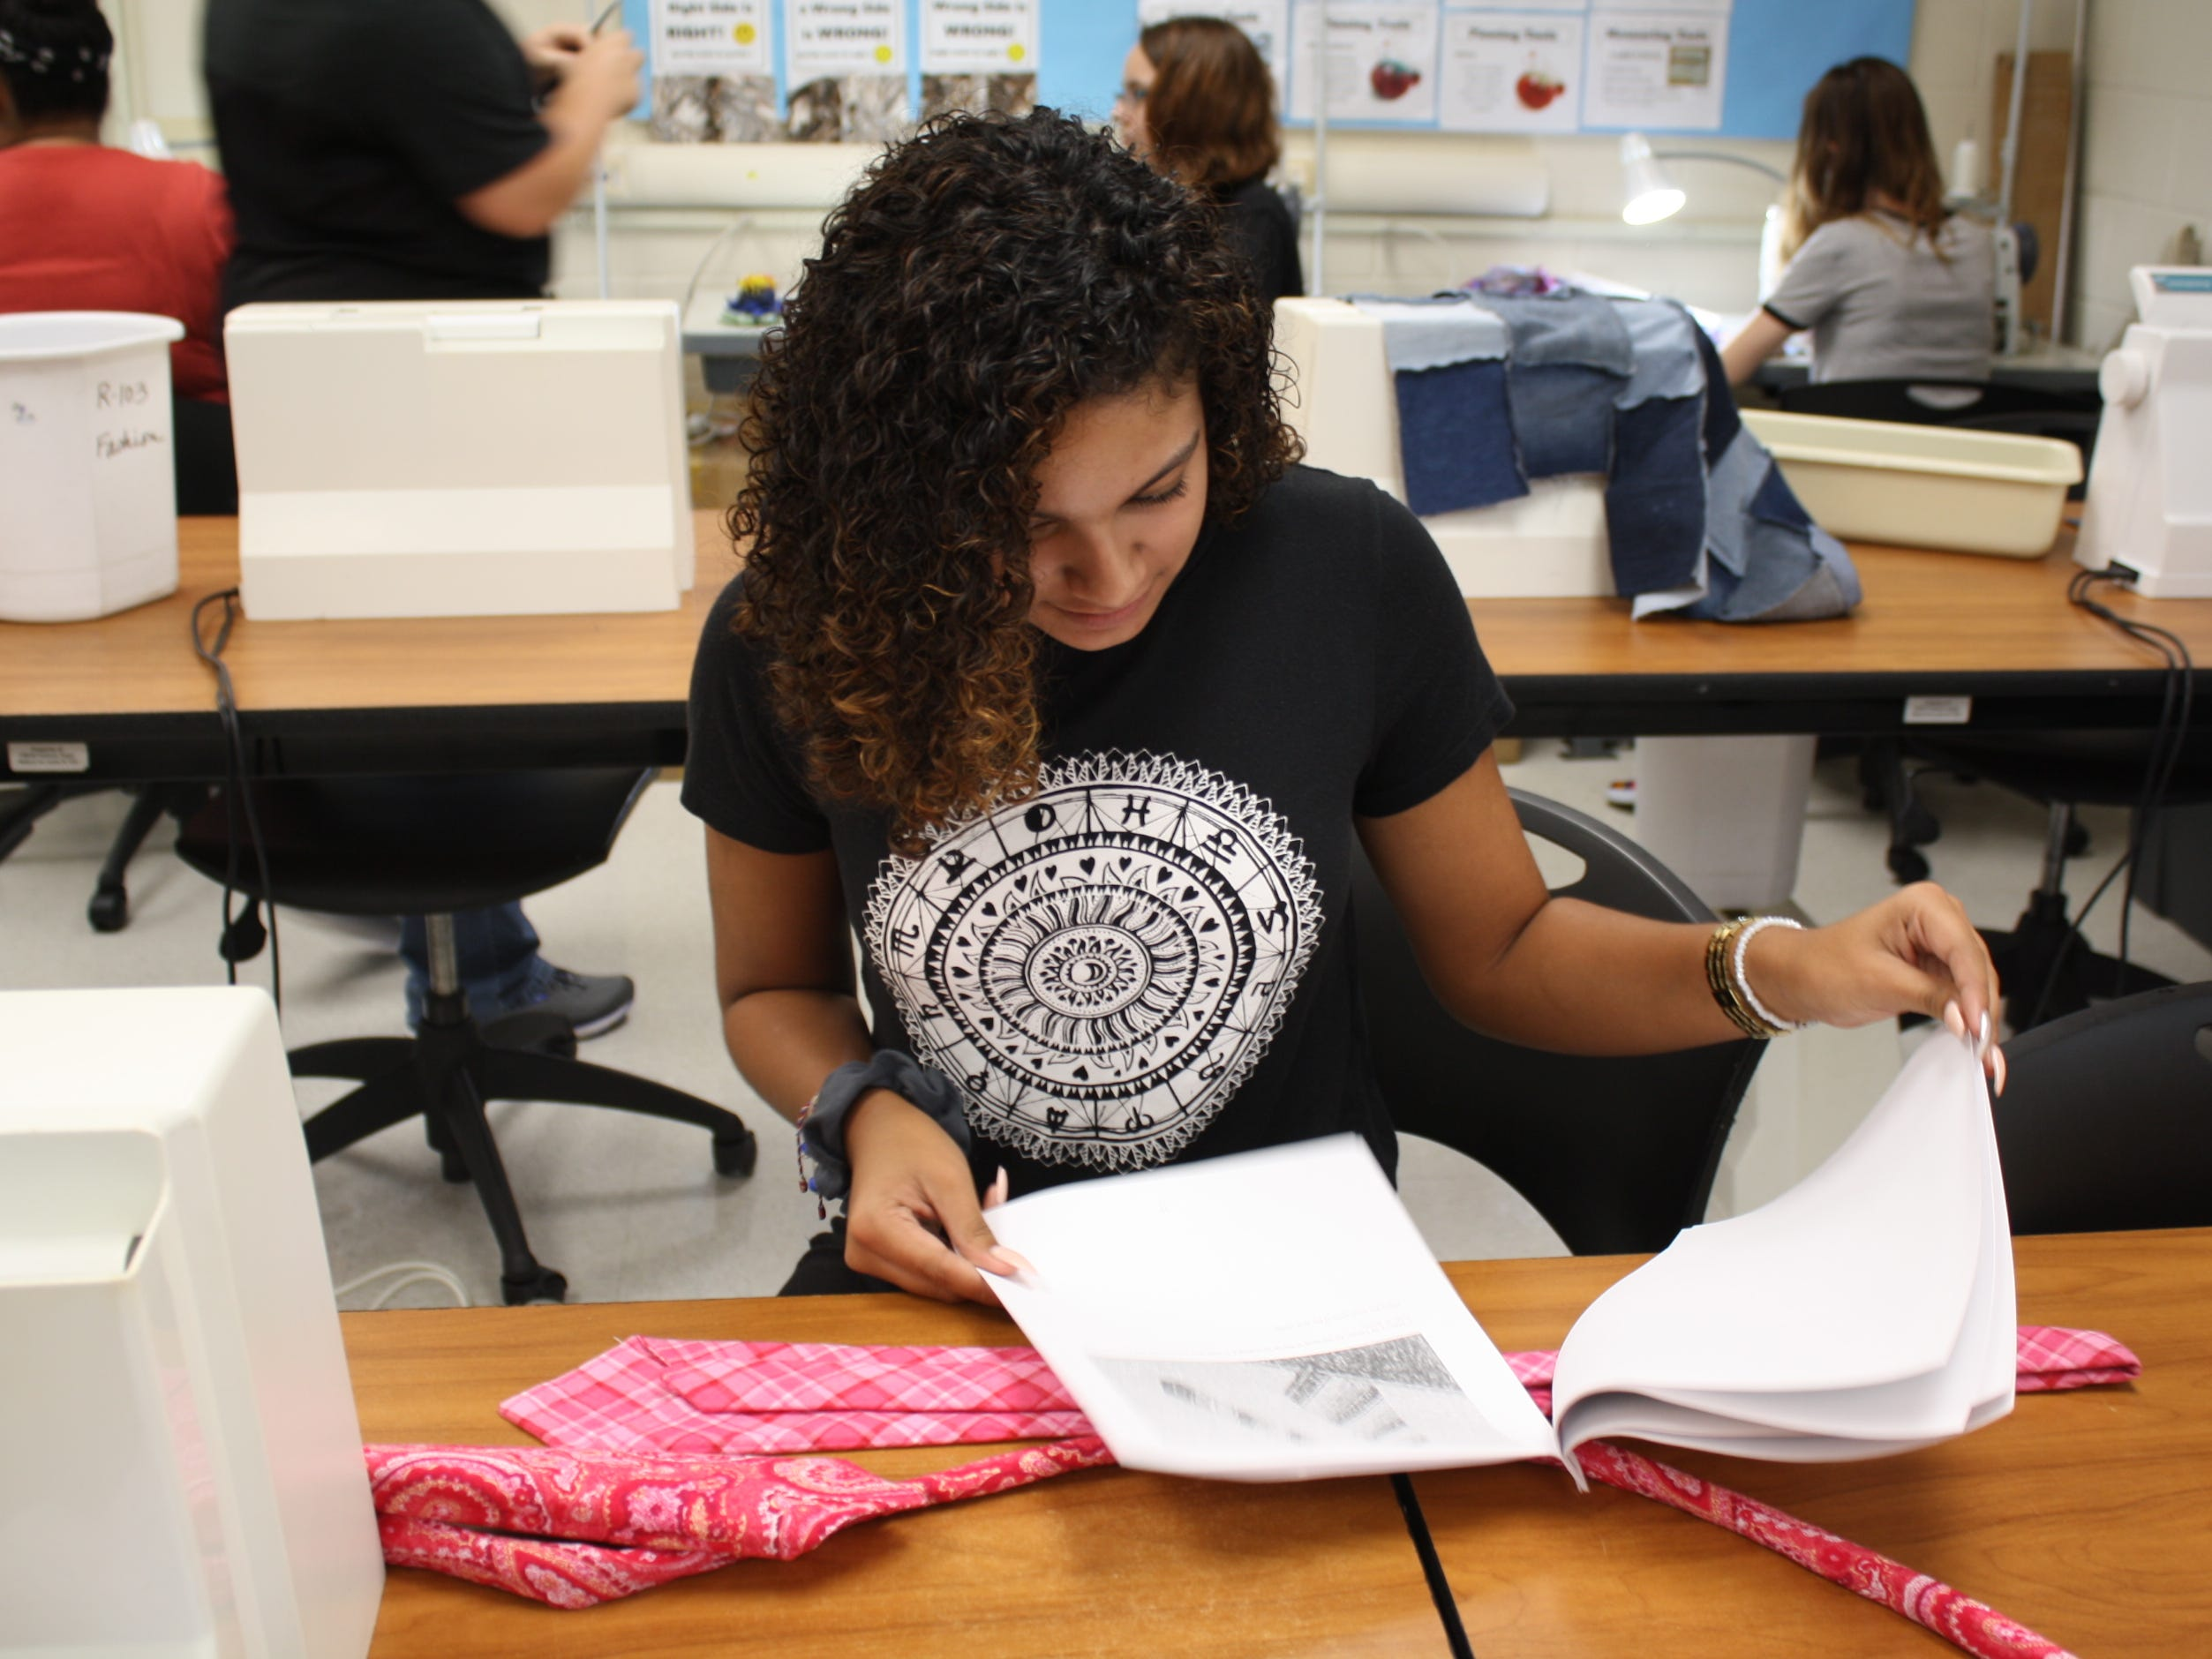 Destanie Genao, a senior at Palm Bay High School, puts the finishing touches on her plaid pink tie. She and other fashion design students at Brevard County high schools are making custom ties for Superintendent Mullins to wear during Breast Cancer Awareness Month.